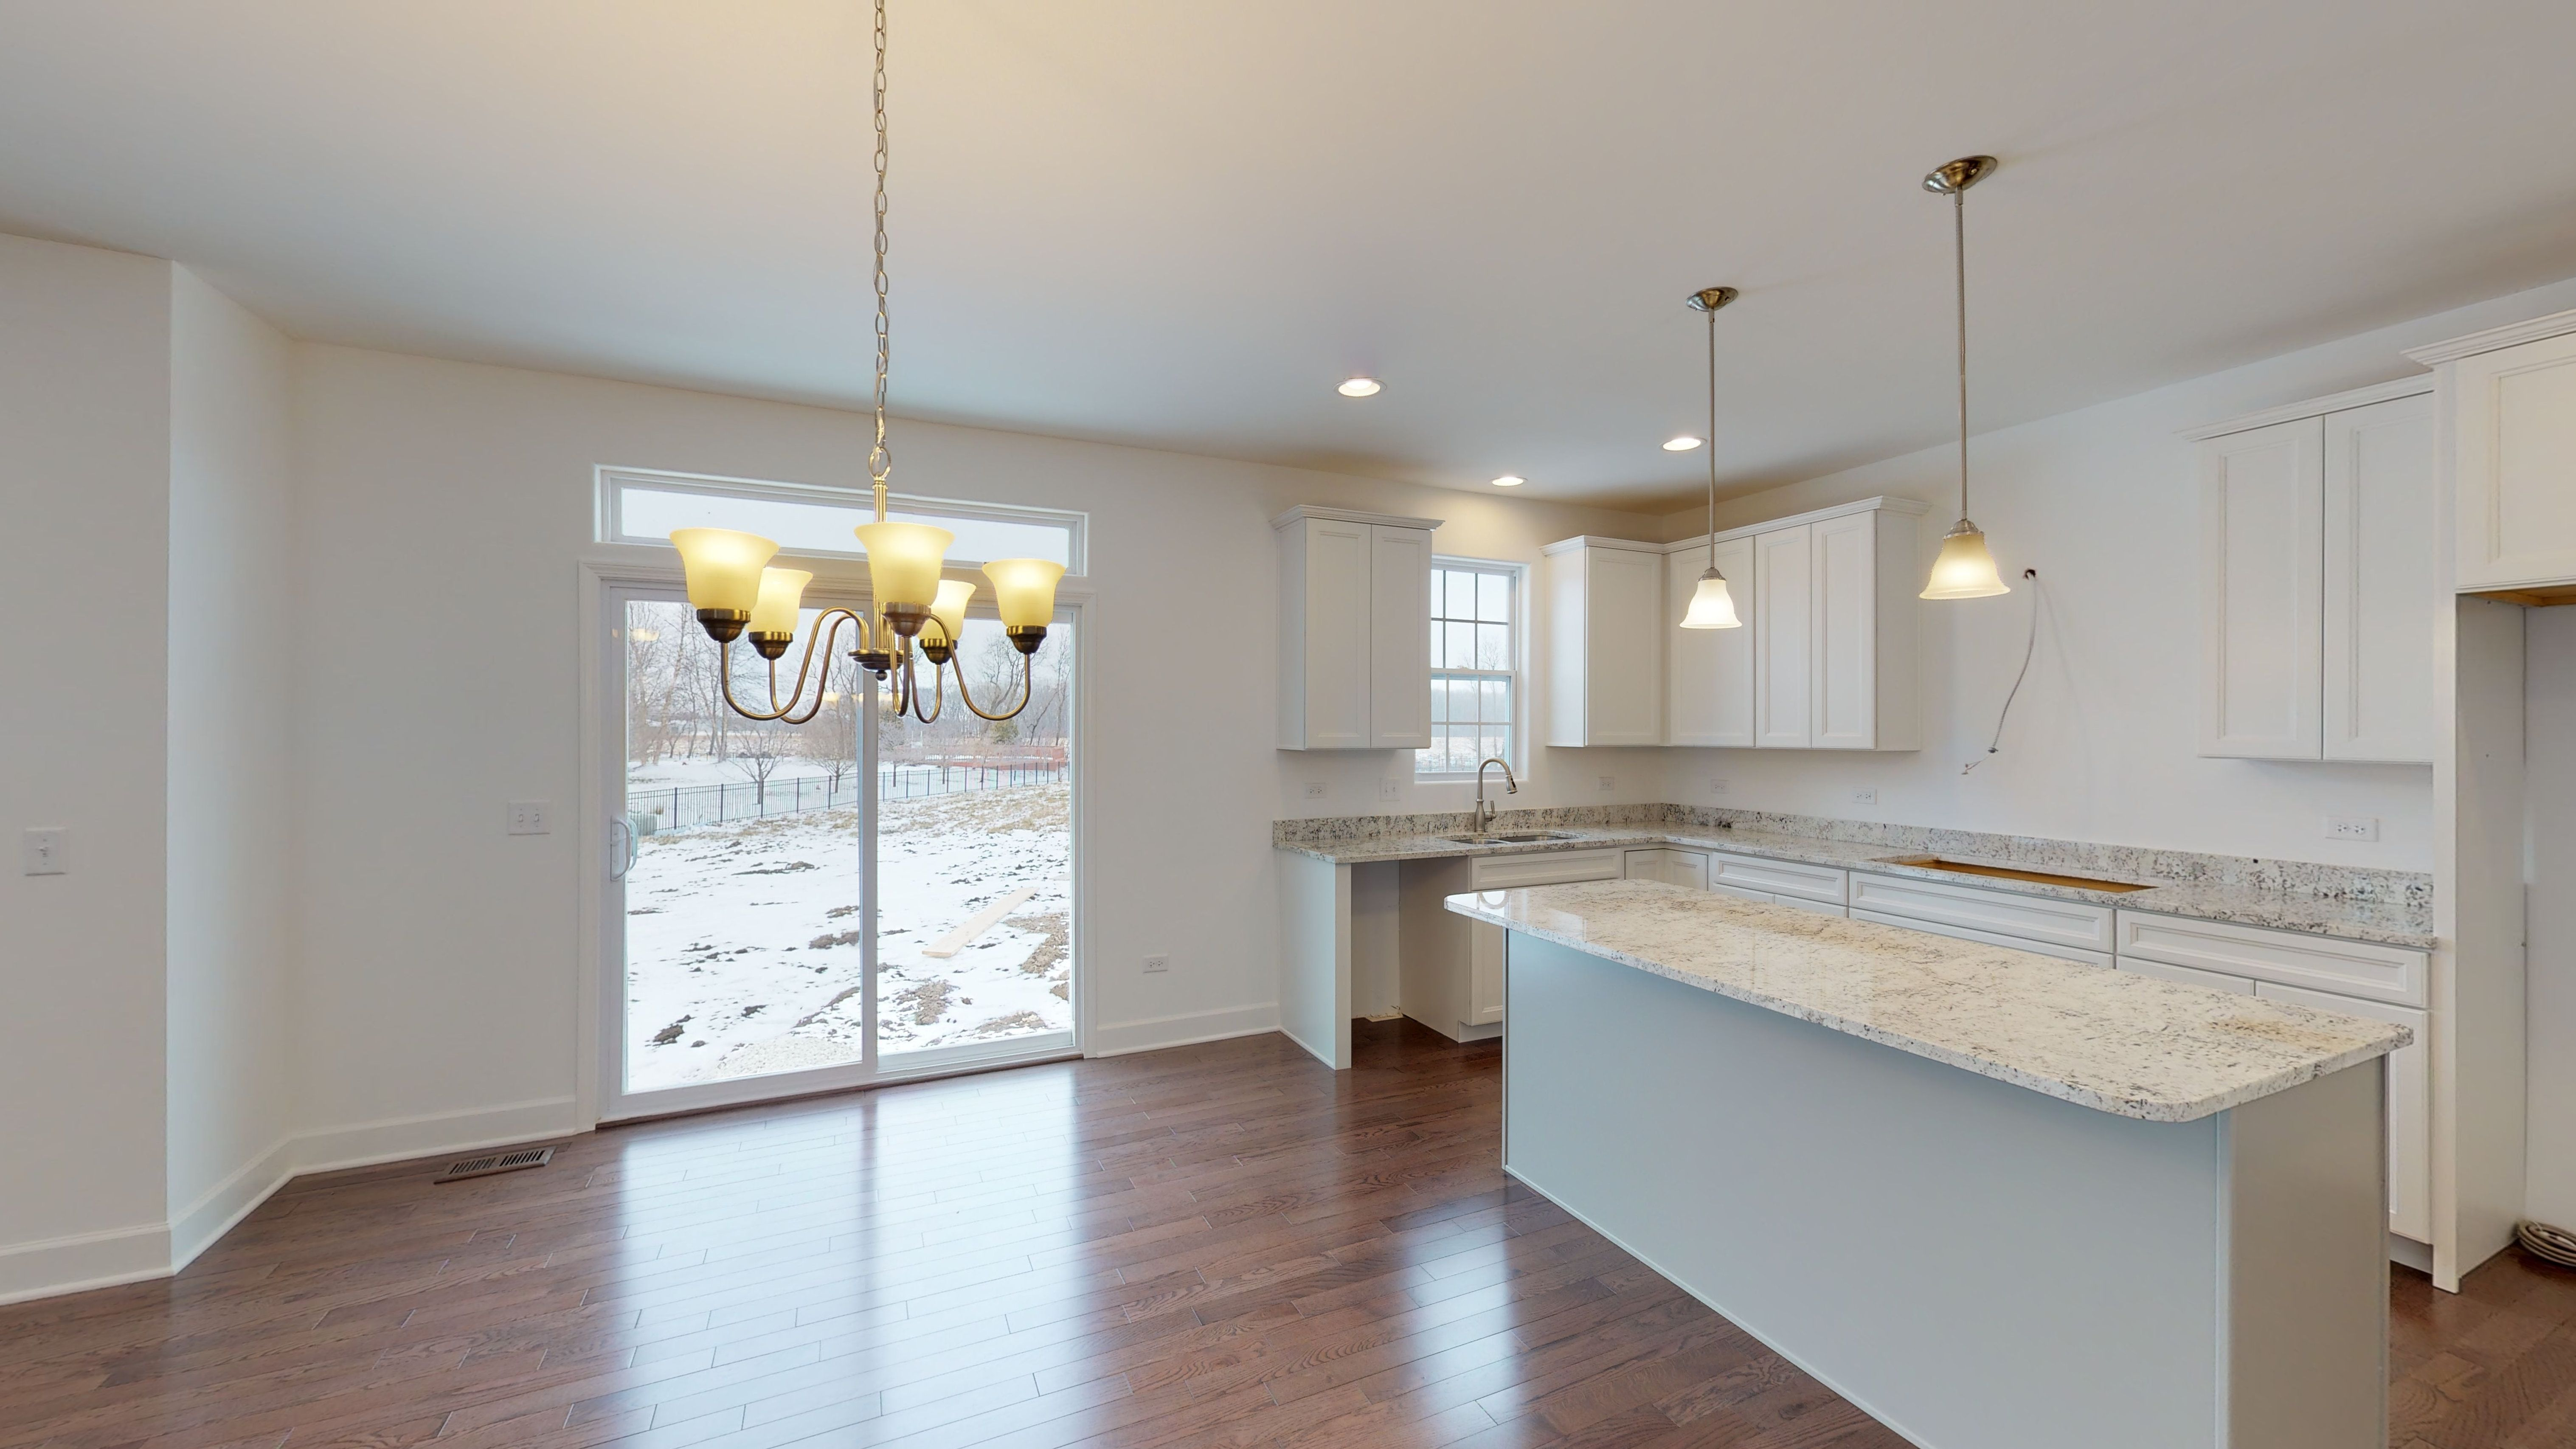 Kitchen featured in The Chestnut By Meadowbrook Builders in Chicago, IL